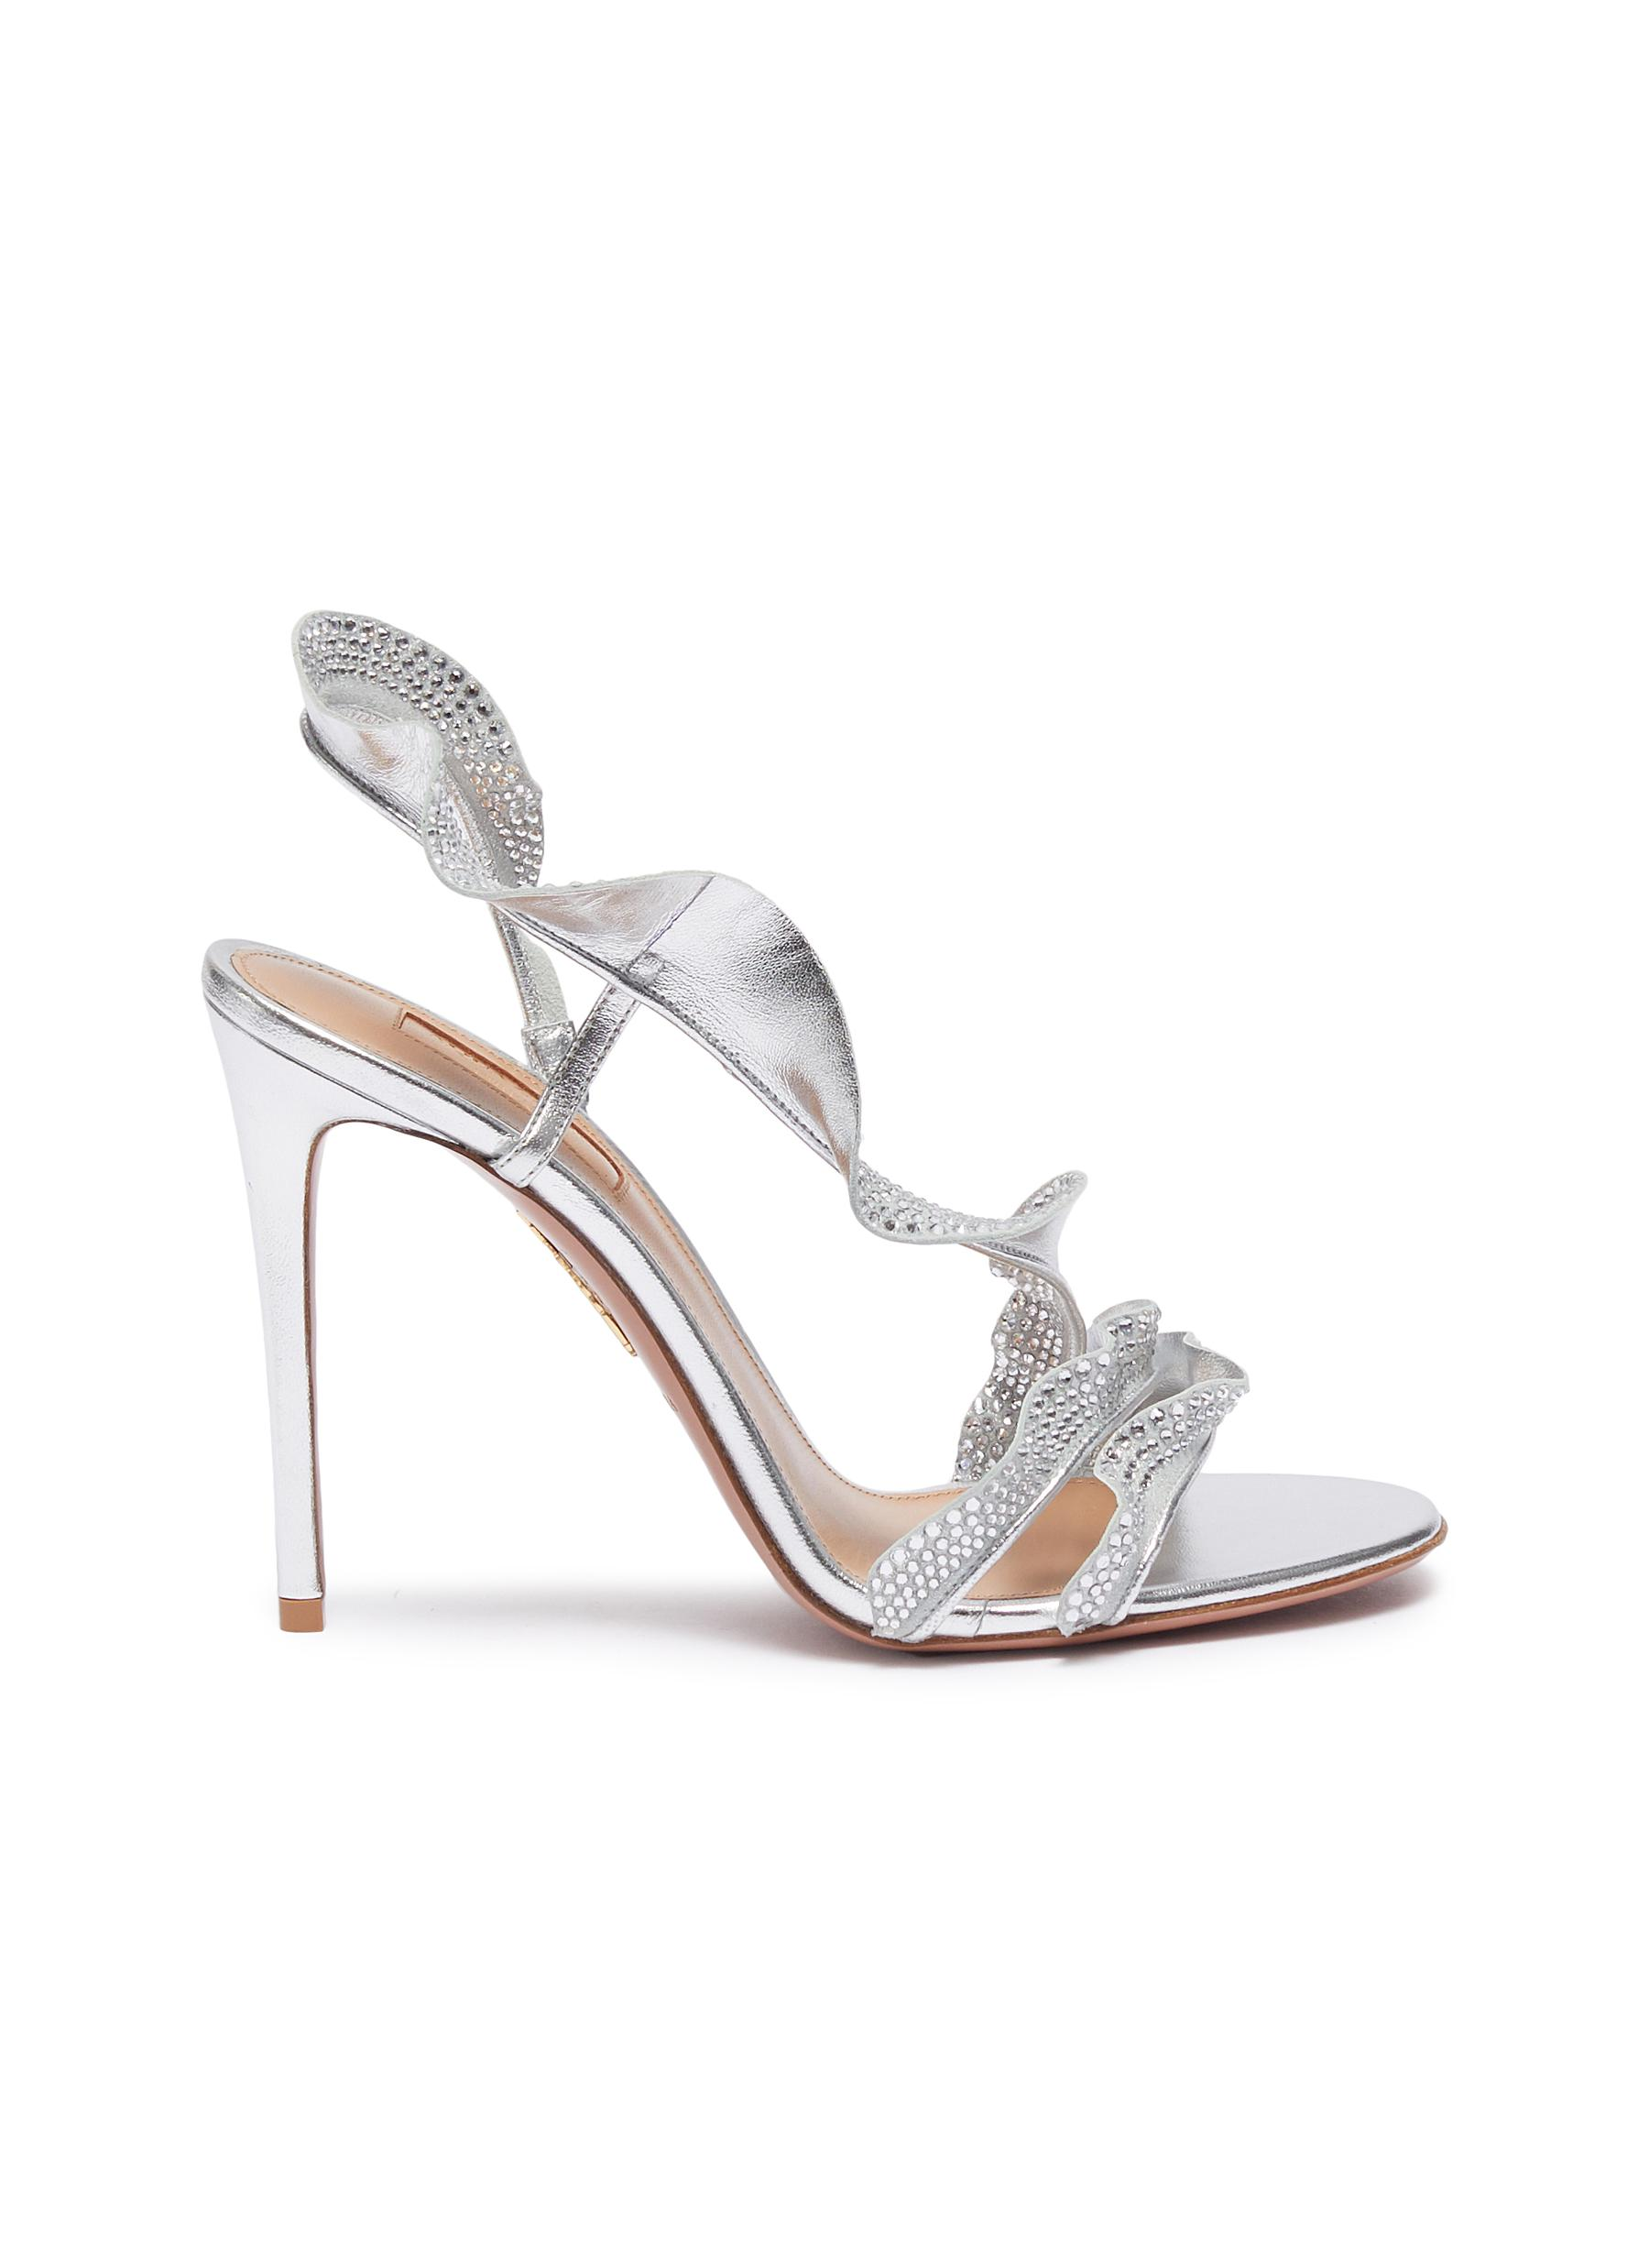 Ruffle glass crystal embellished metallic leather sandals by Aquazzura